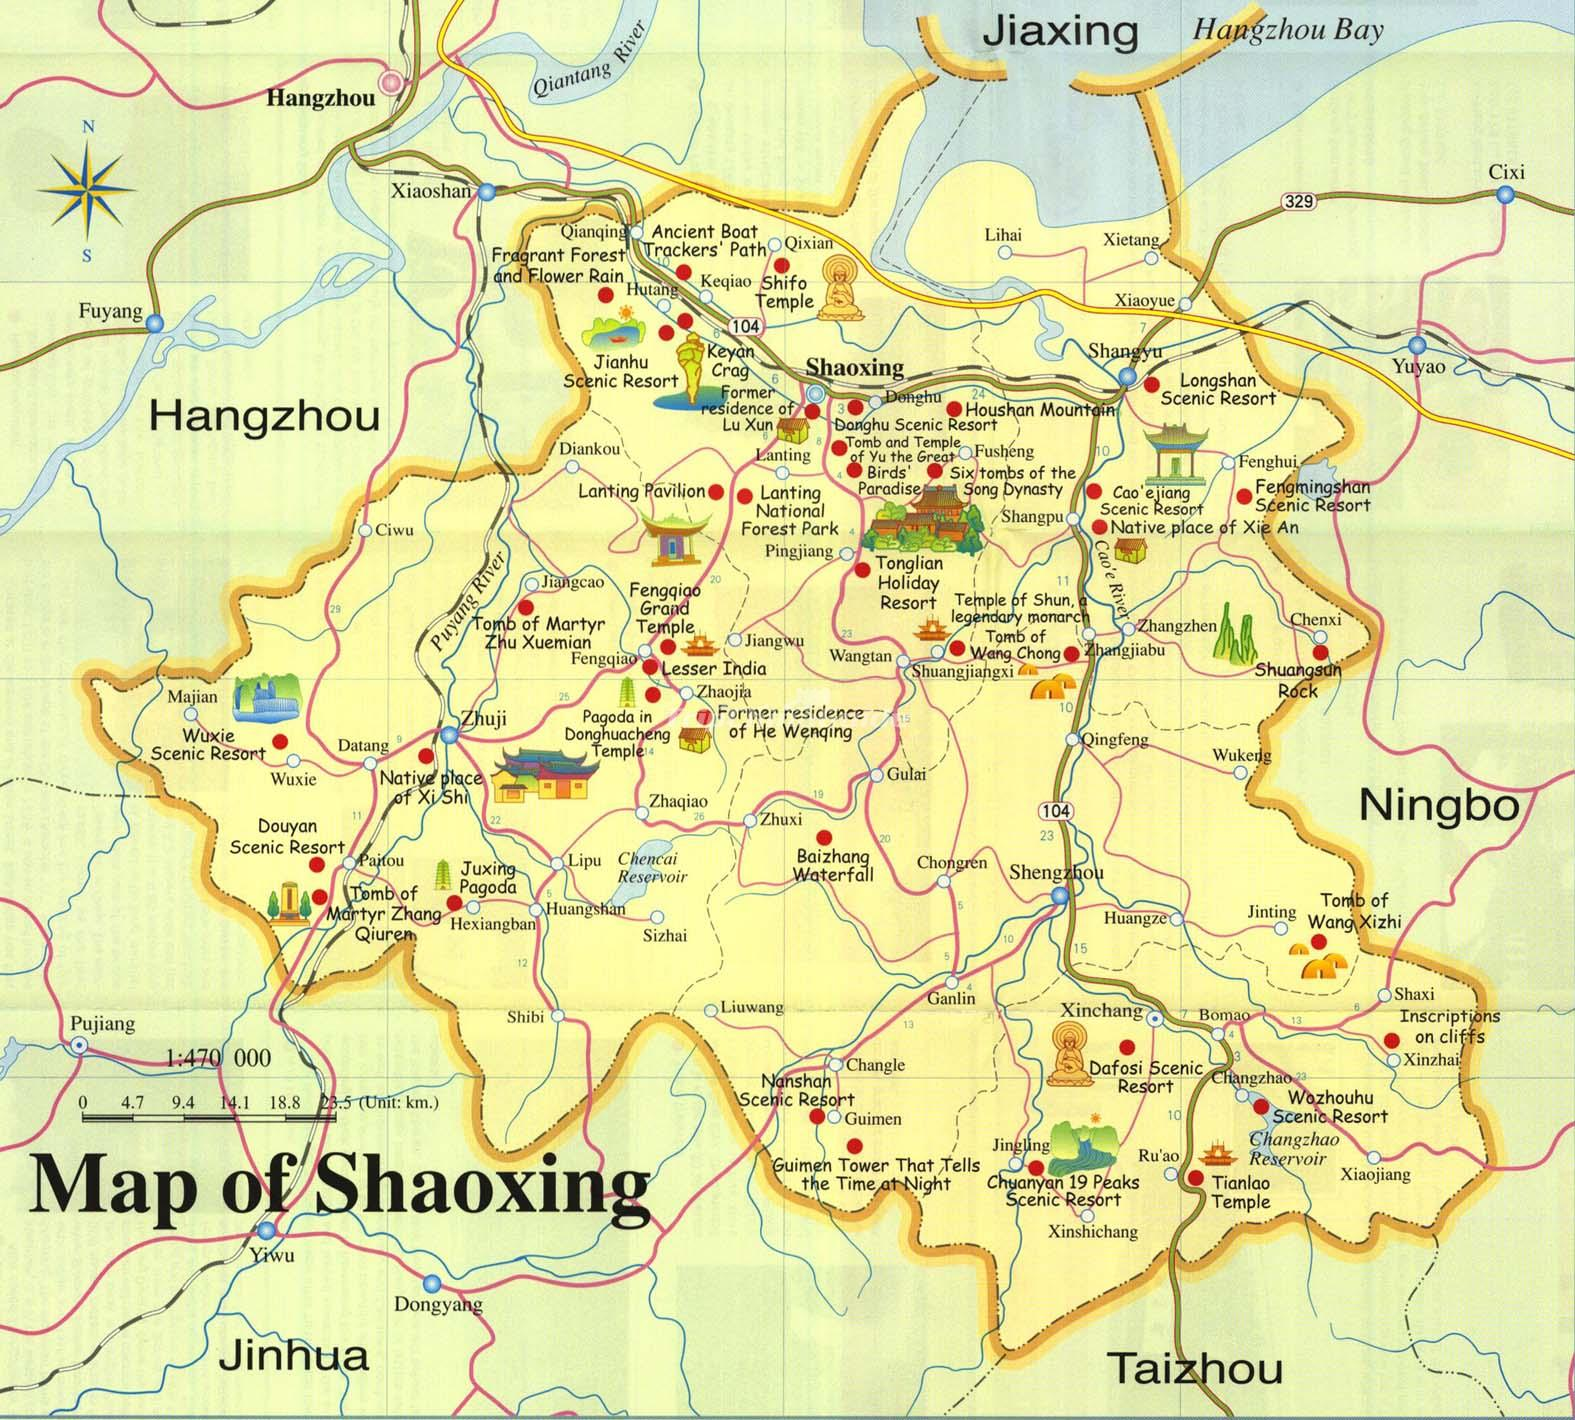 Shaoxing China Map Maps Of Shaoxing - Shaoxing map